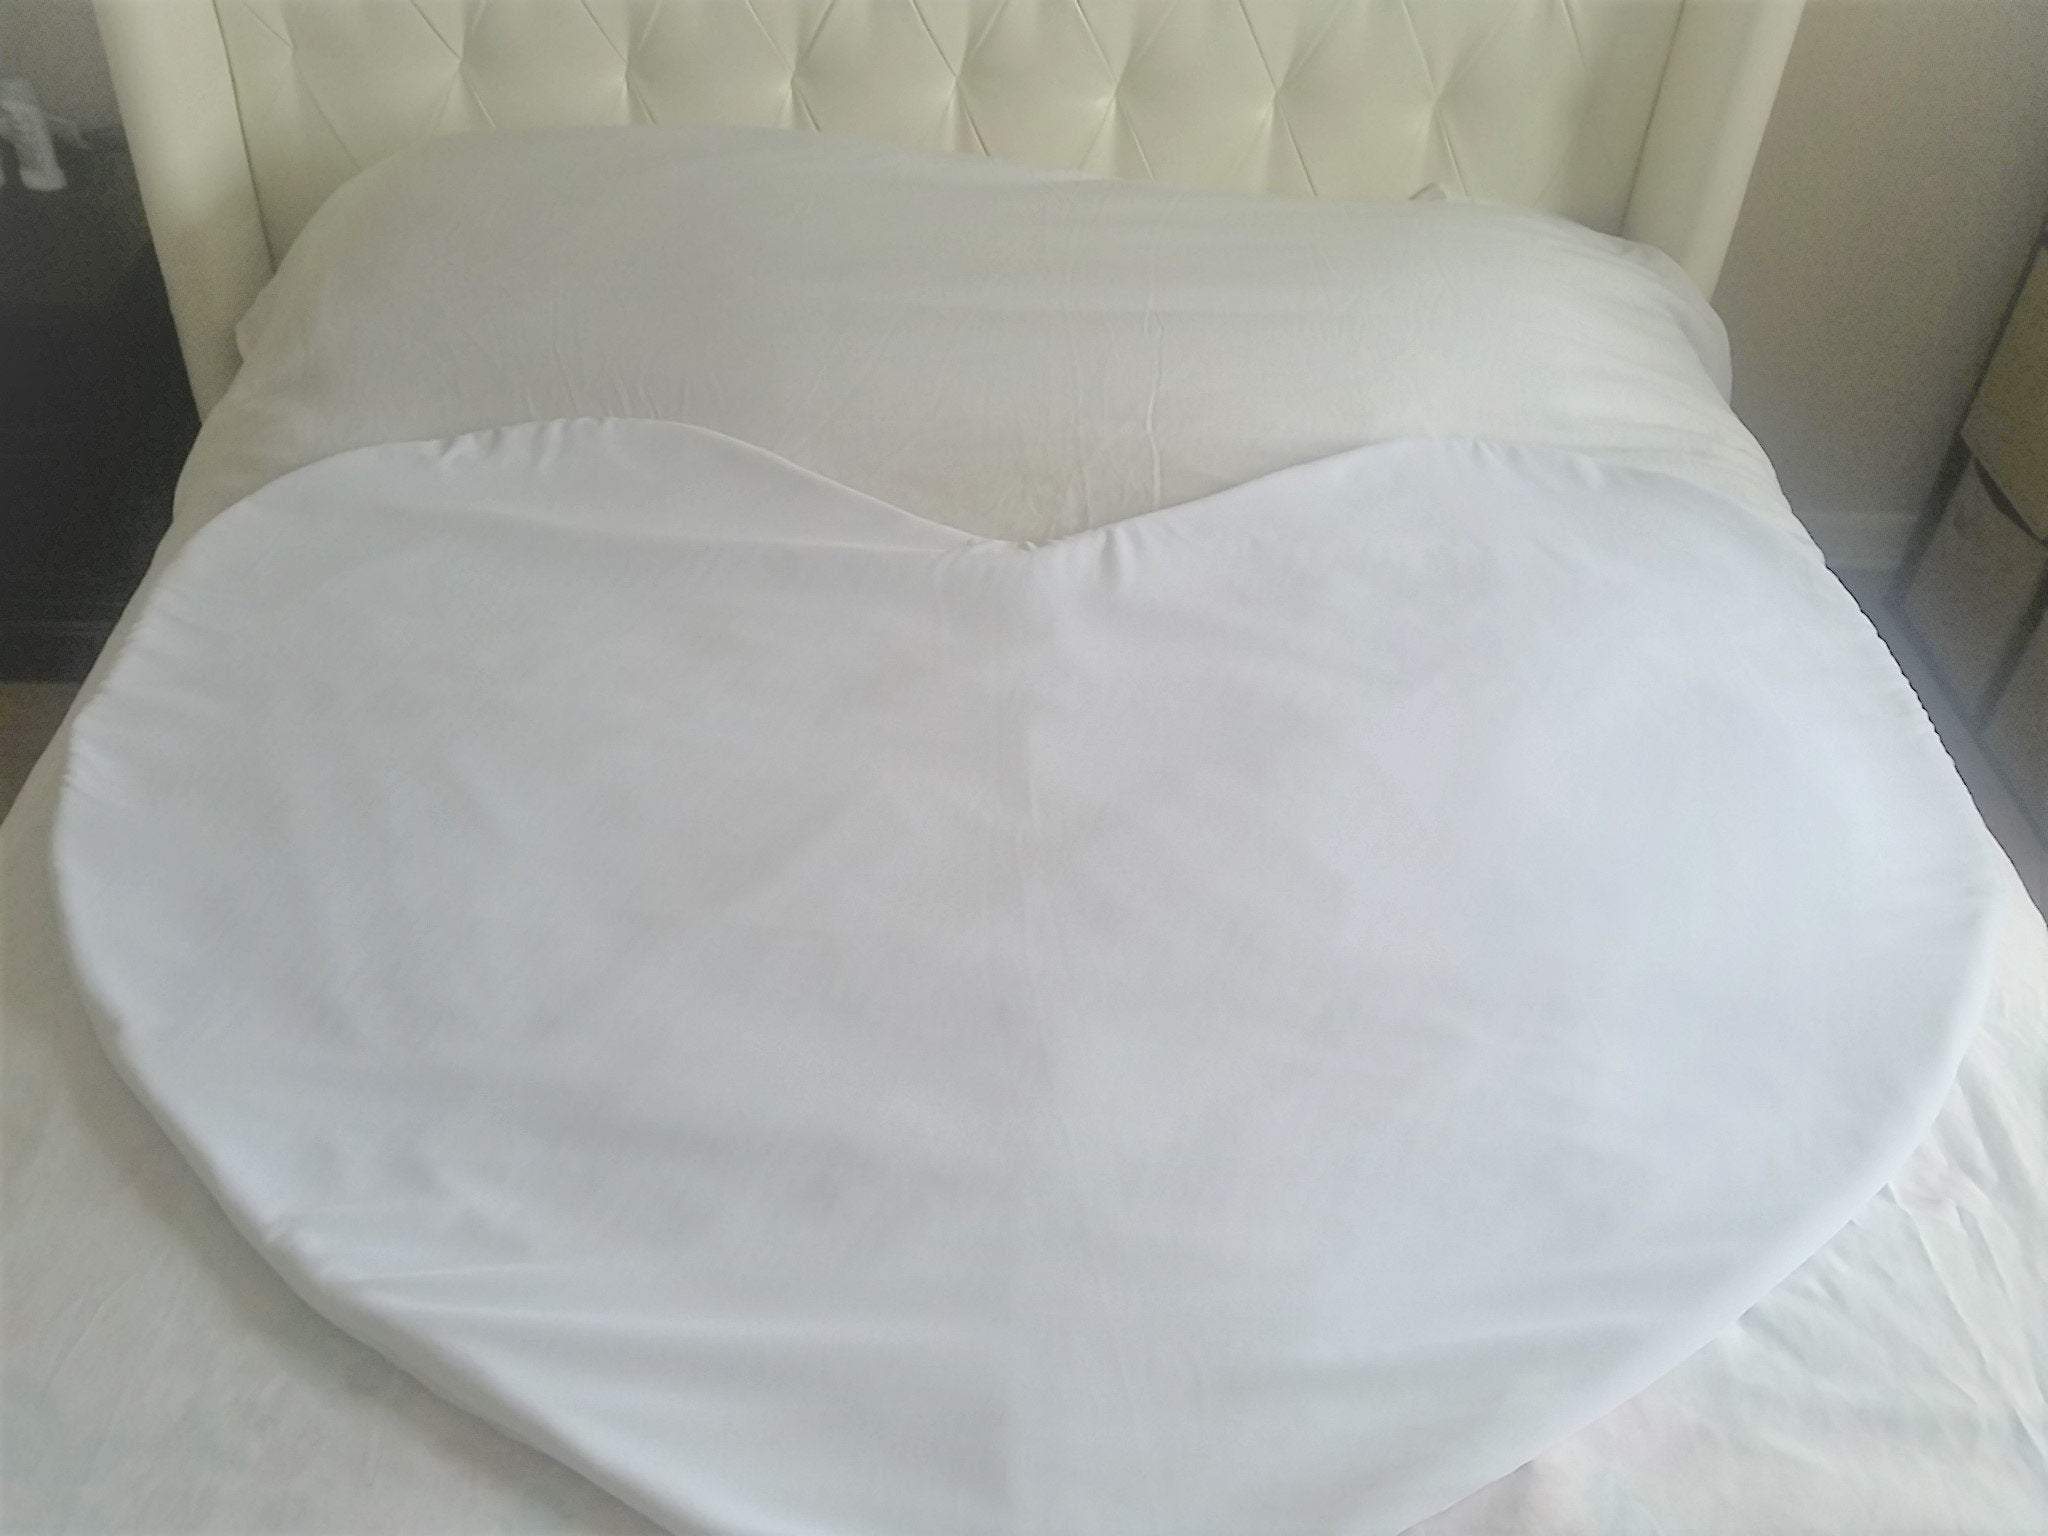 Intimate Heart luxury mattress protector, velvet, waterproof, absorbent.